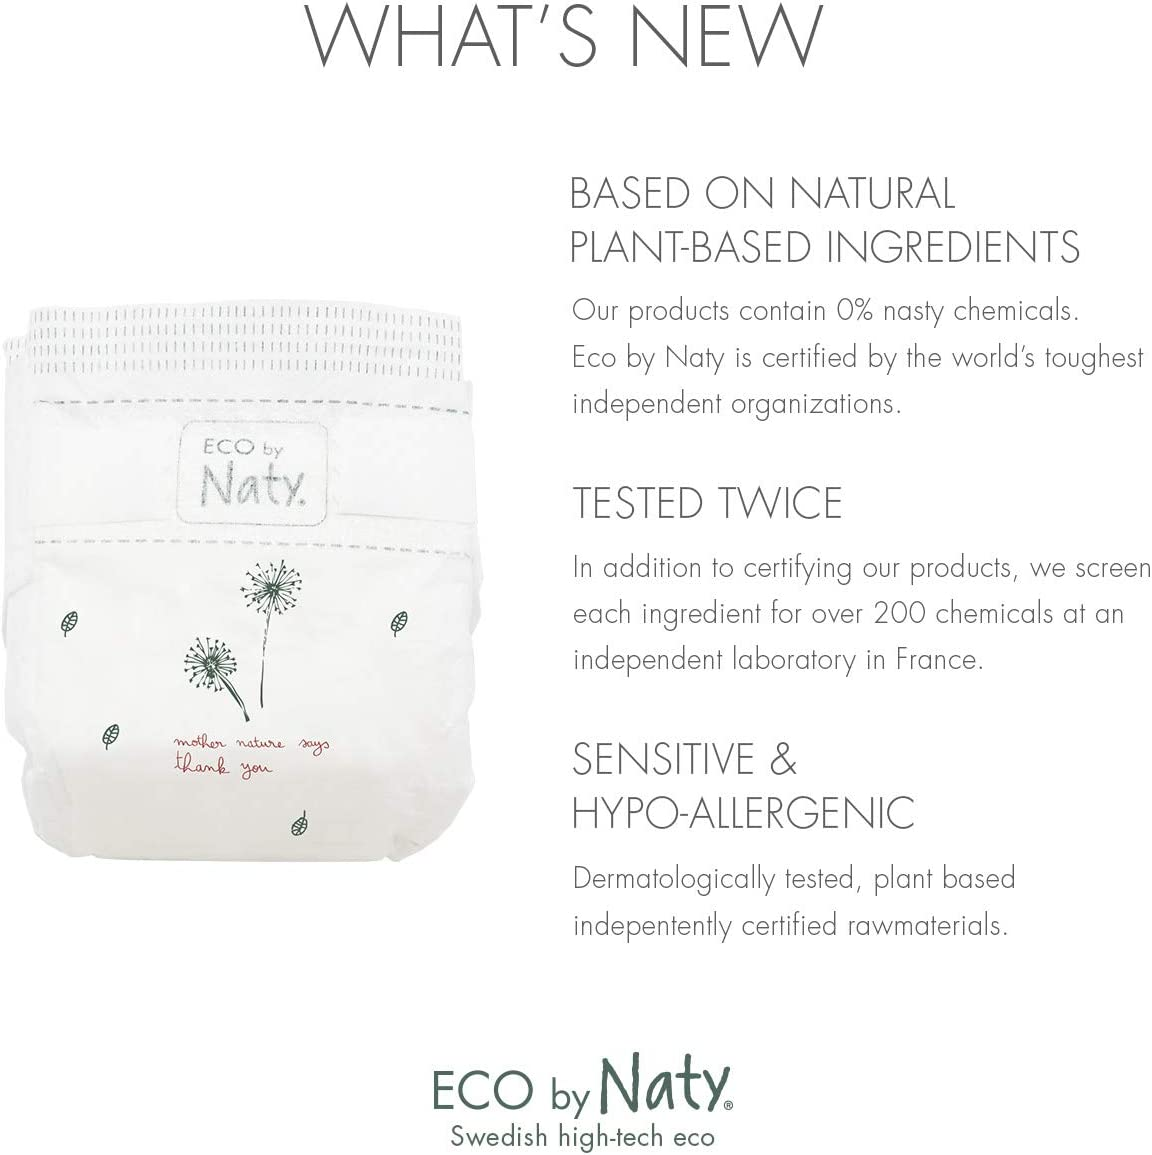 Size 2 Eco by Naty Disposable Diaper Trial Box Includes 10x Size 2 Diapers and Eco News Magazine 2.09 pounds 0.95 kilograms